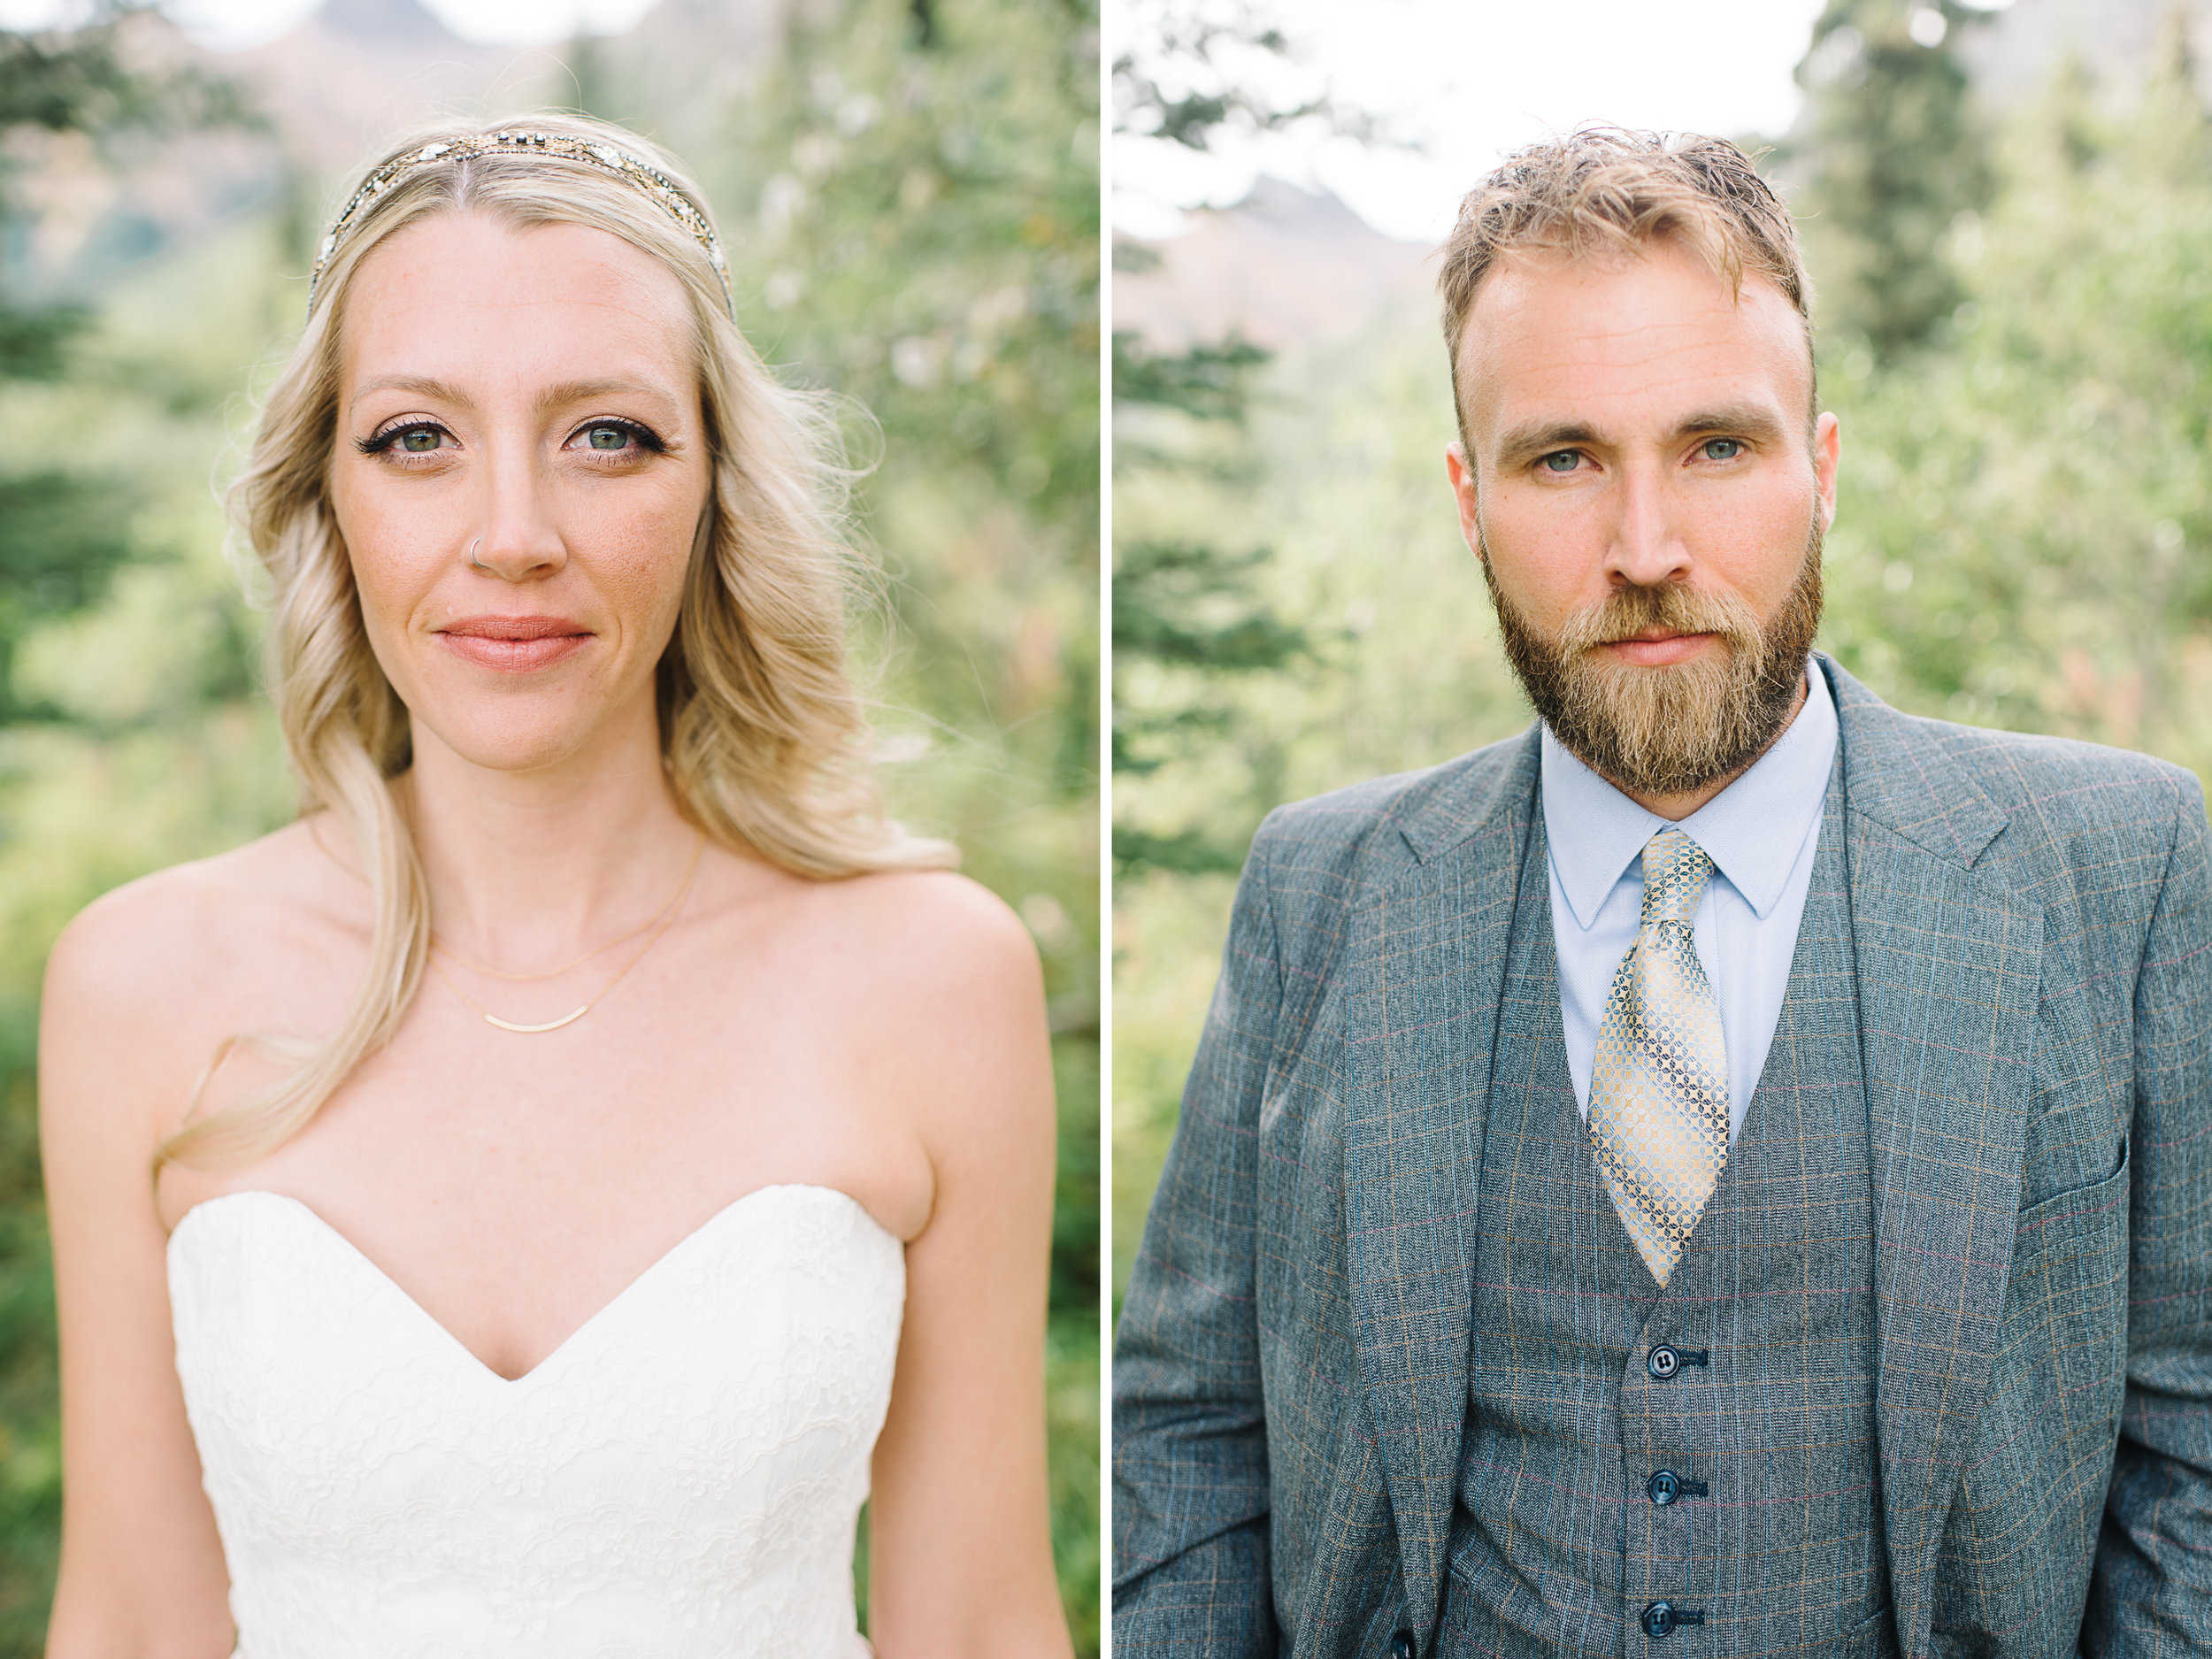 alaska-wedding-engagement-bridal-portrait3.jpg